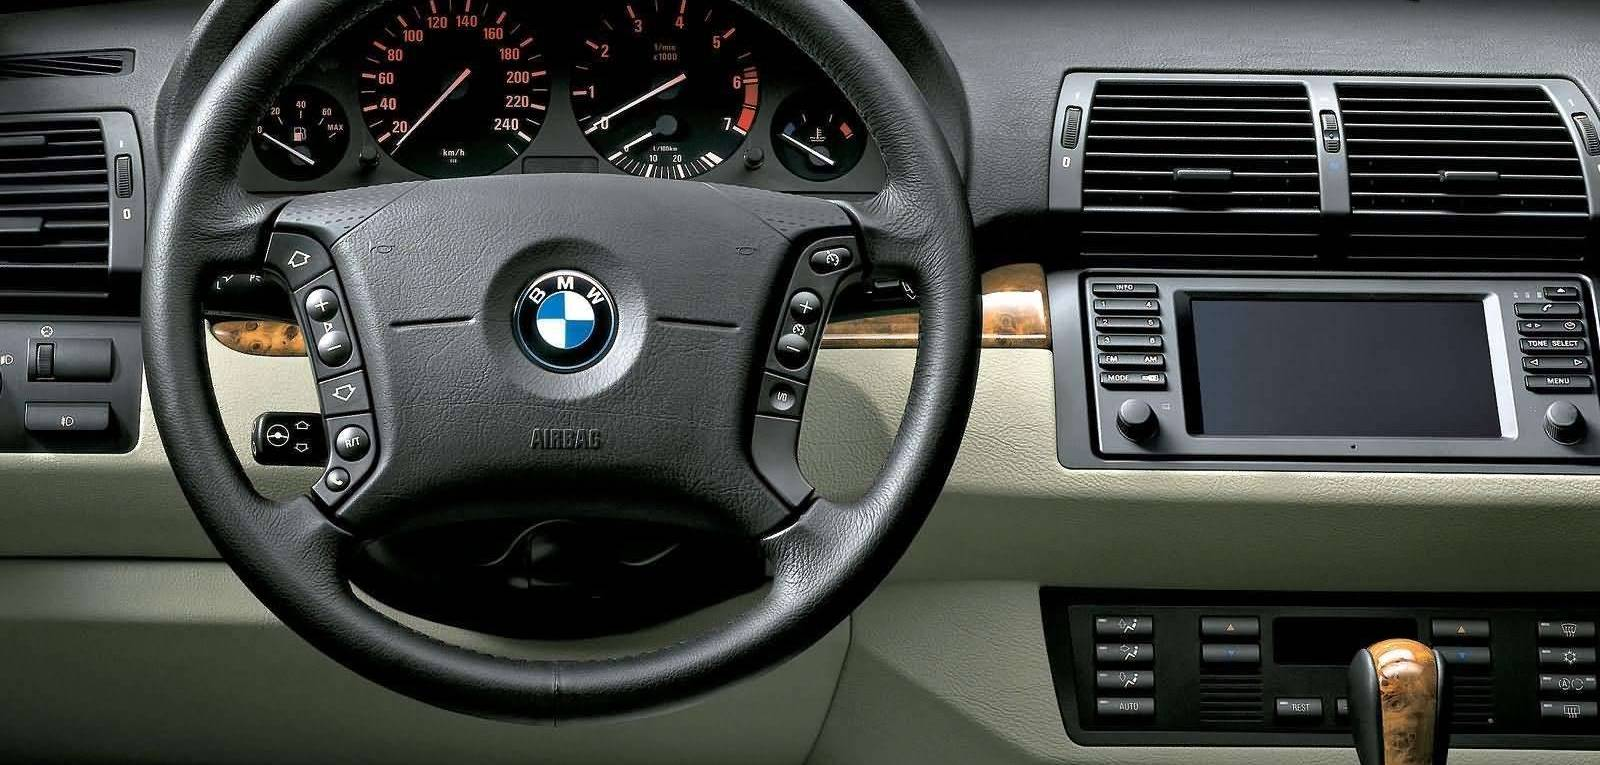 BMW X5 Series Price in Pakistan, Pictures and Reviews ...